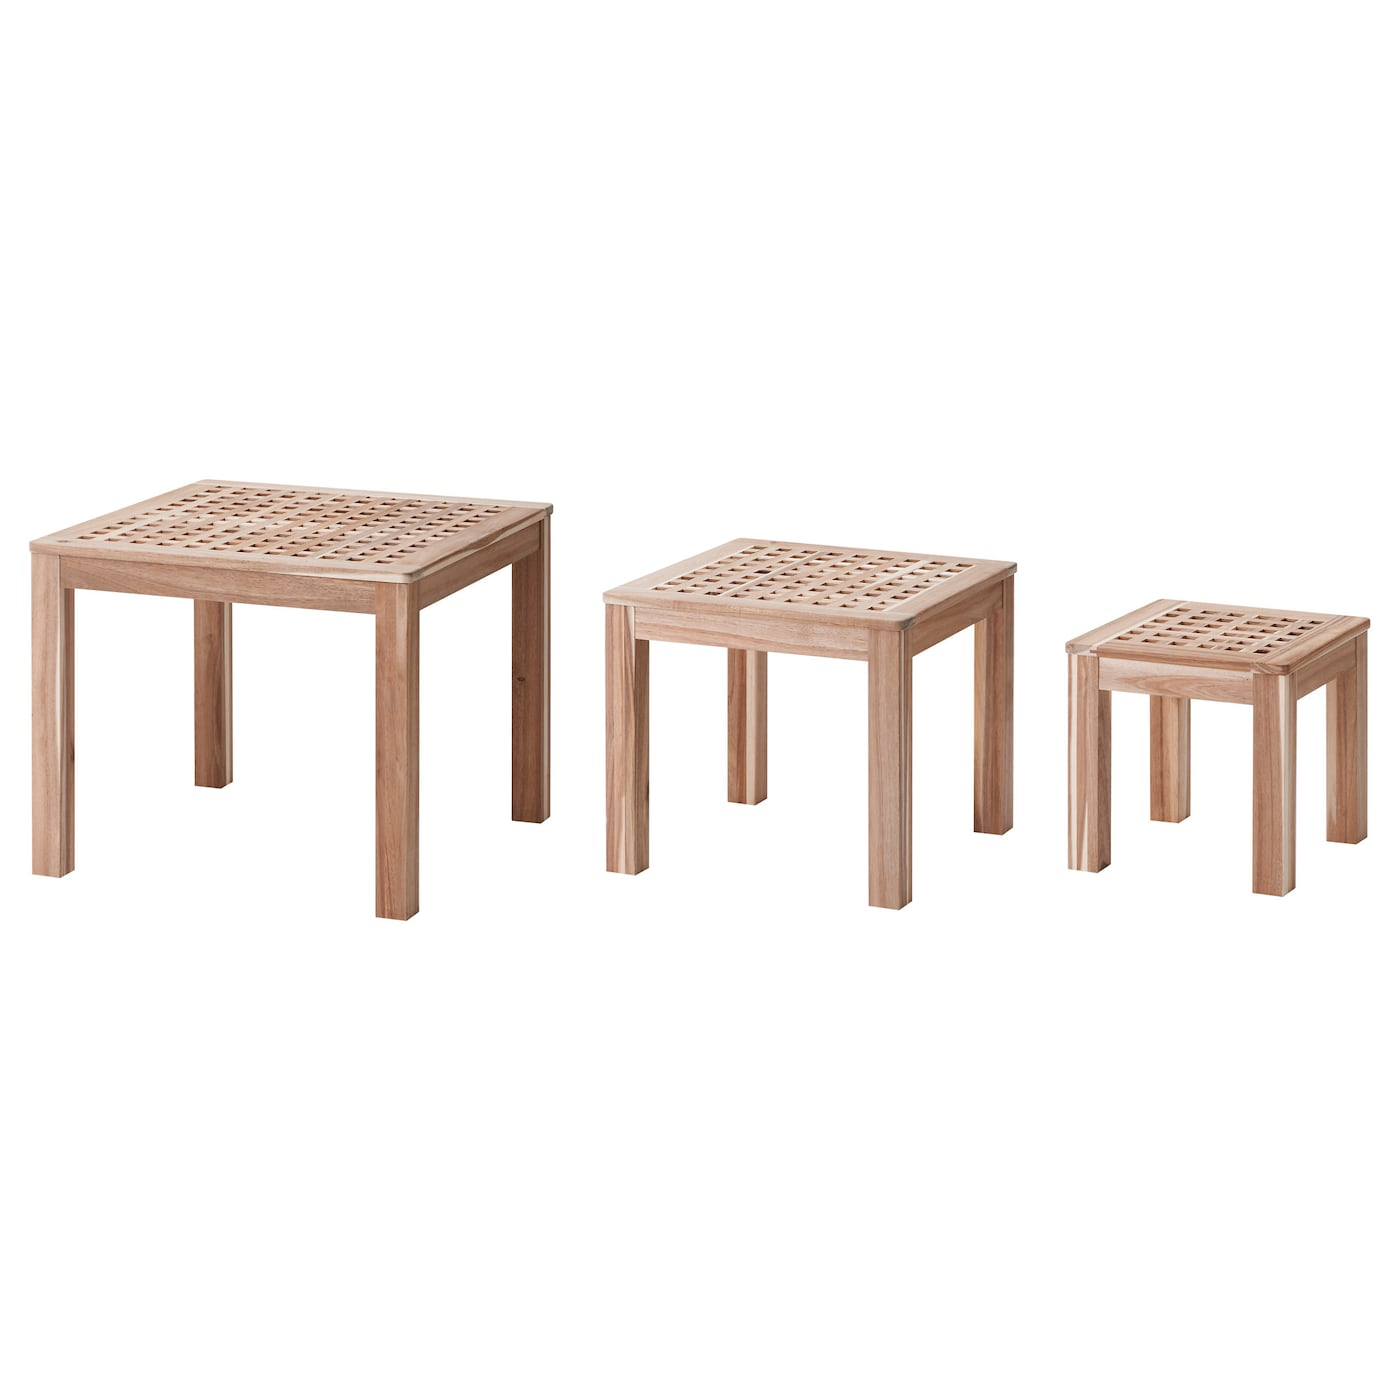 Skoghall nest of tables set of 3 acacia ikea ikea skoghall nest of tables set of 3 can be pushed together to save space geotapseo Gallery